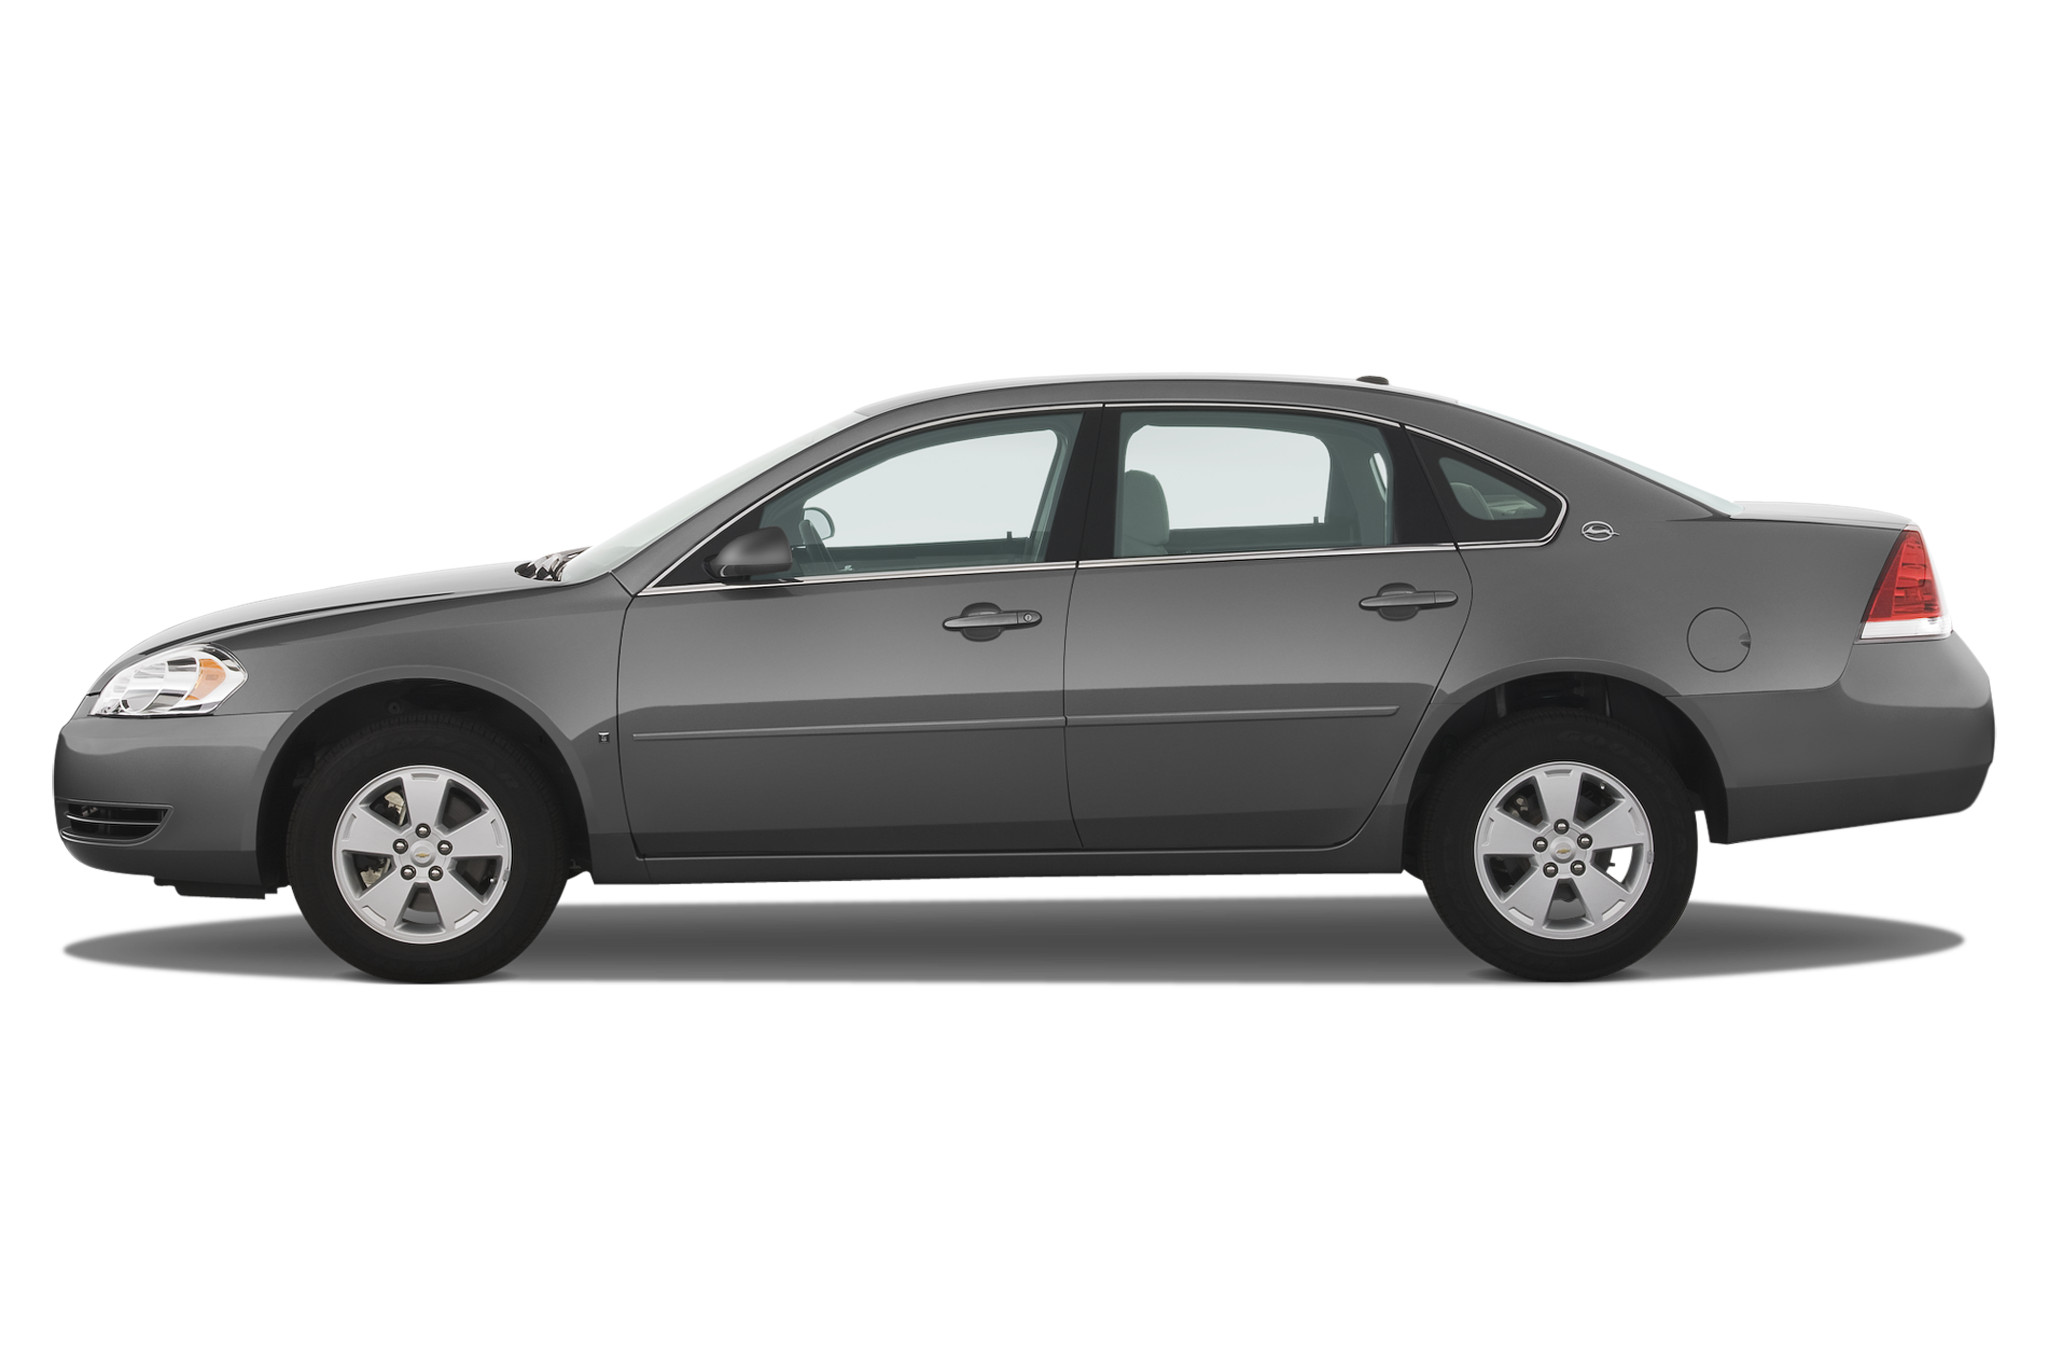 2013 chevrolet impala to continue as fleet only model. Cars Review. Best American Auto & Cars Review